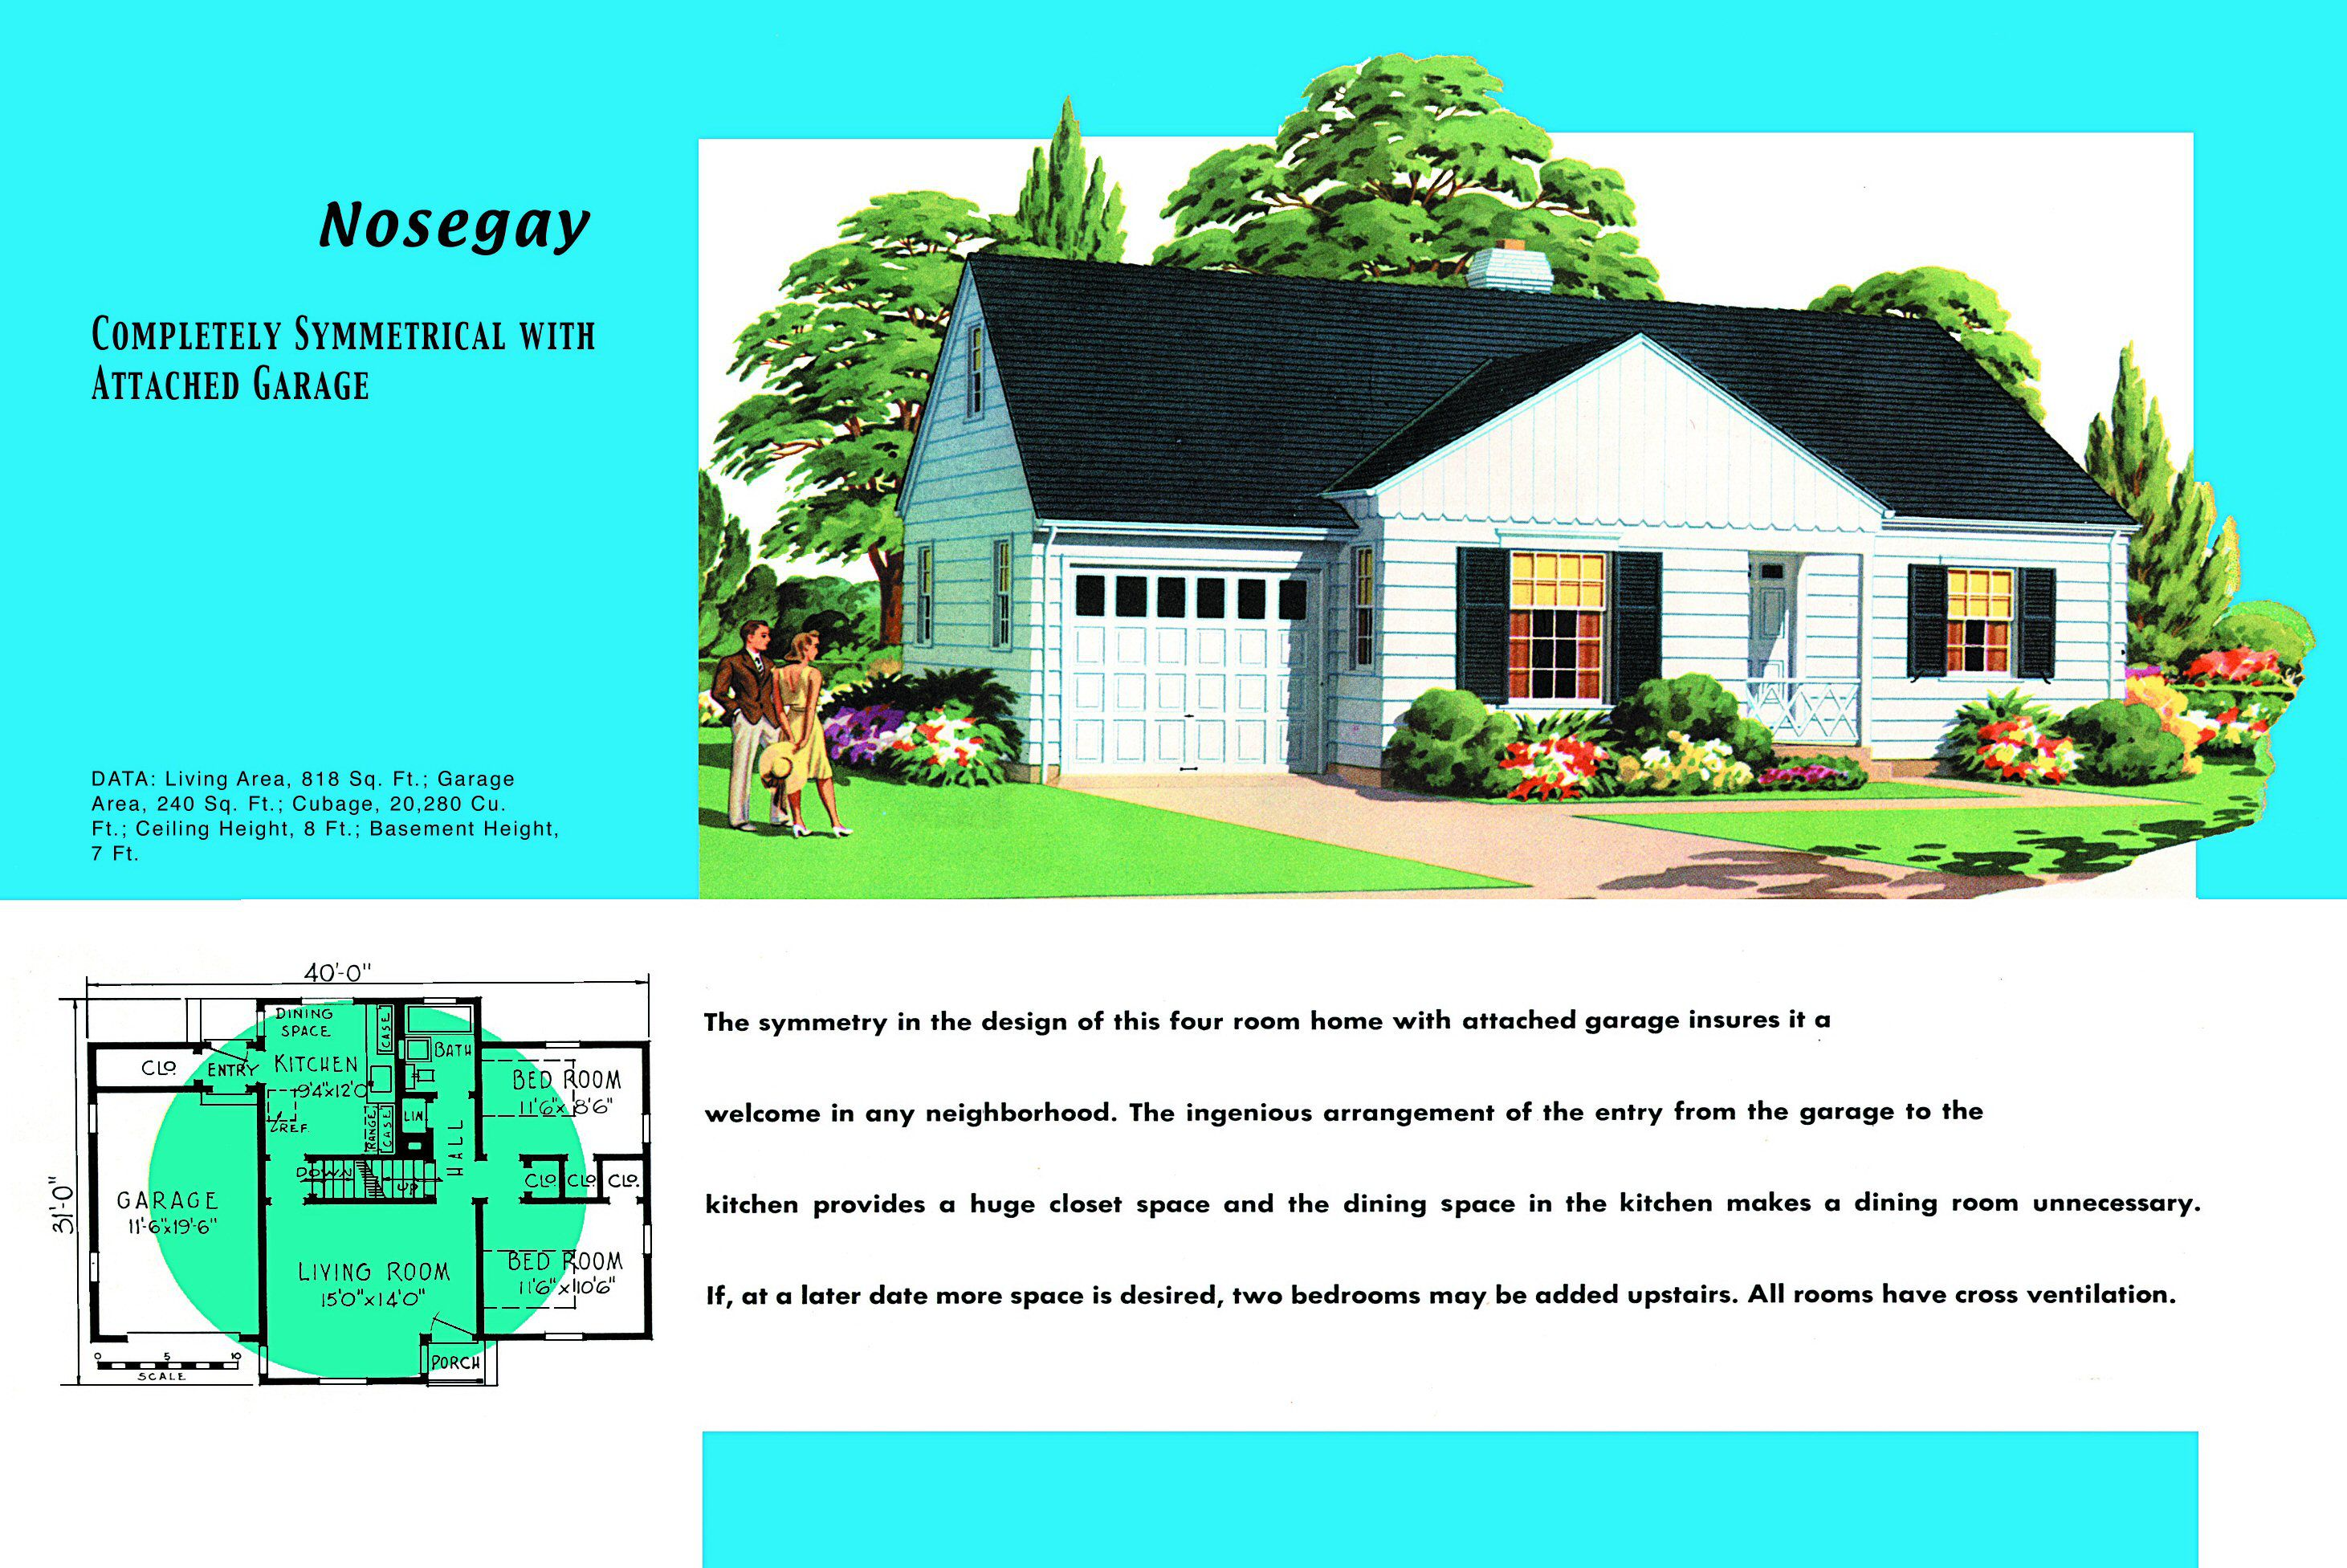 A History of Minimal Yet Traditional House Style on split level home floor plans, exterior ranch remodel plans, 1950s colonial house plans, 1950s cottage house plans, 1950s bungalow, 1950s rambler home plans, 1950s home interiors, 1950s farm house plans, 1950s home decor, 1950s 60s style houses, 1950s mid century home plans, 1950s cape cod house plans, 1950s brick house plans, 1950s cape cod home plans, 1950s modern home floor plan, 1950s vacation home plans, 1950s split level home plans, 1950s ranch floor plans,